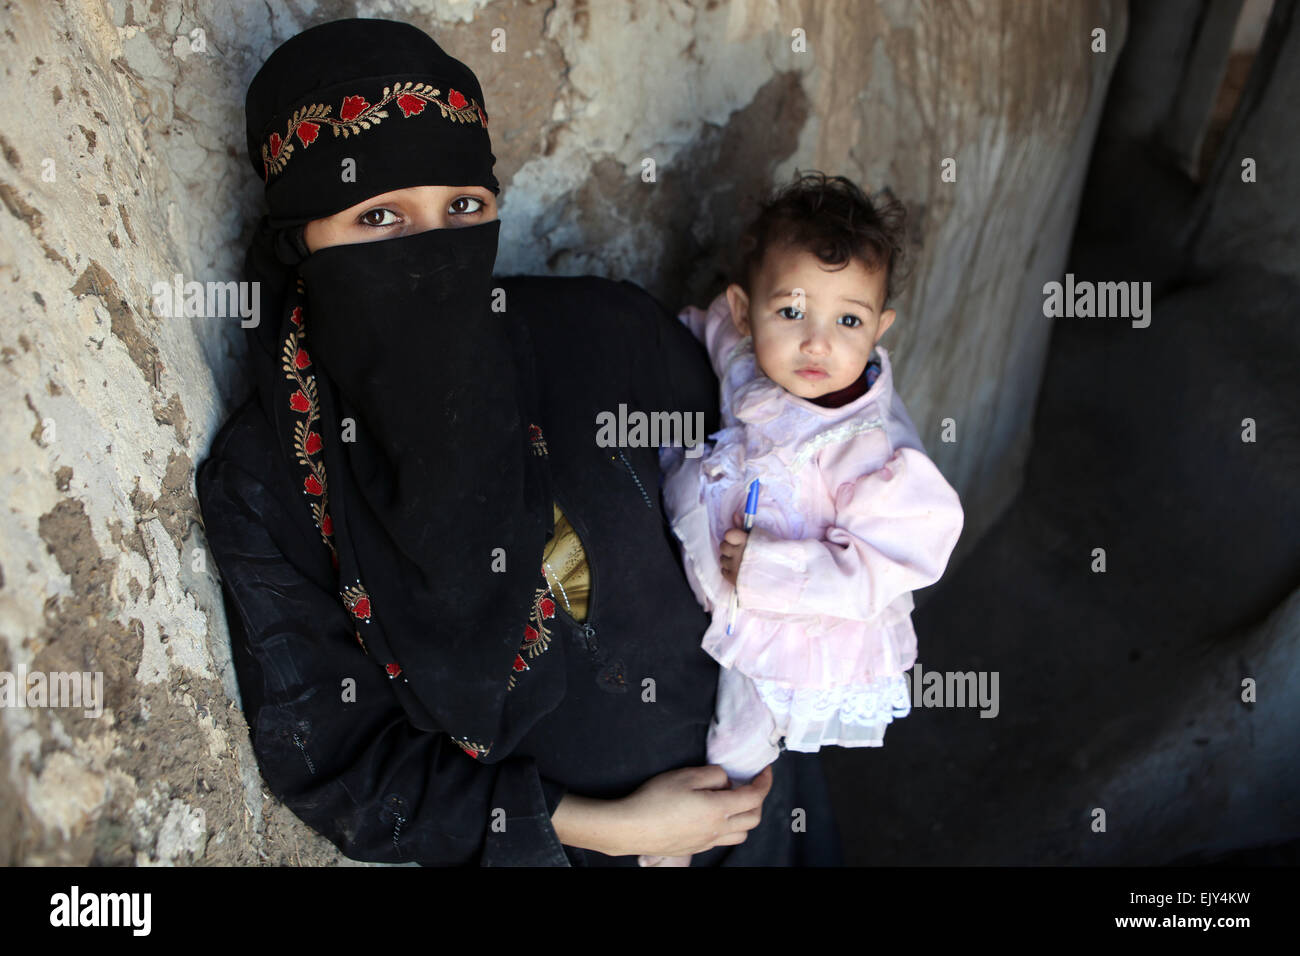 Mother and child in rural Yemen. - Stock Image